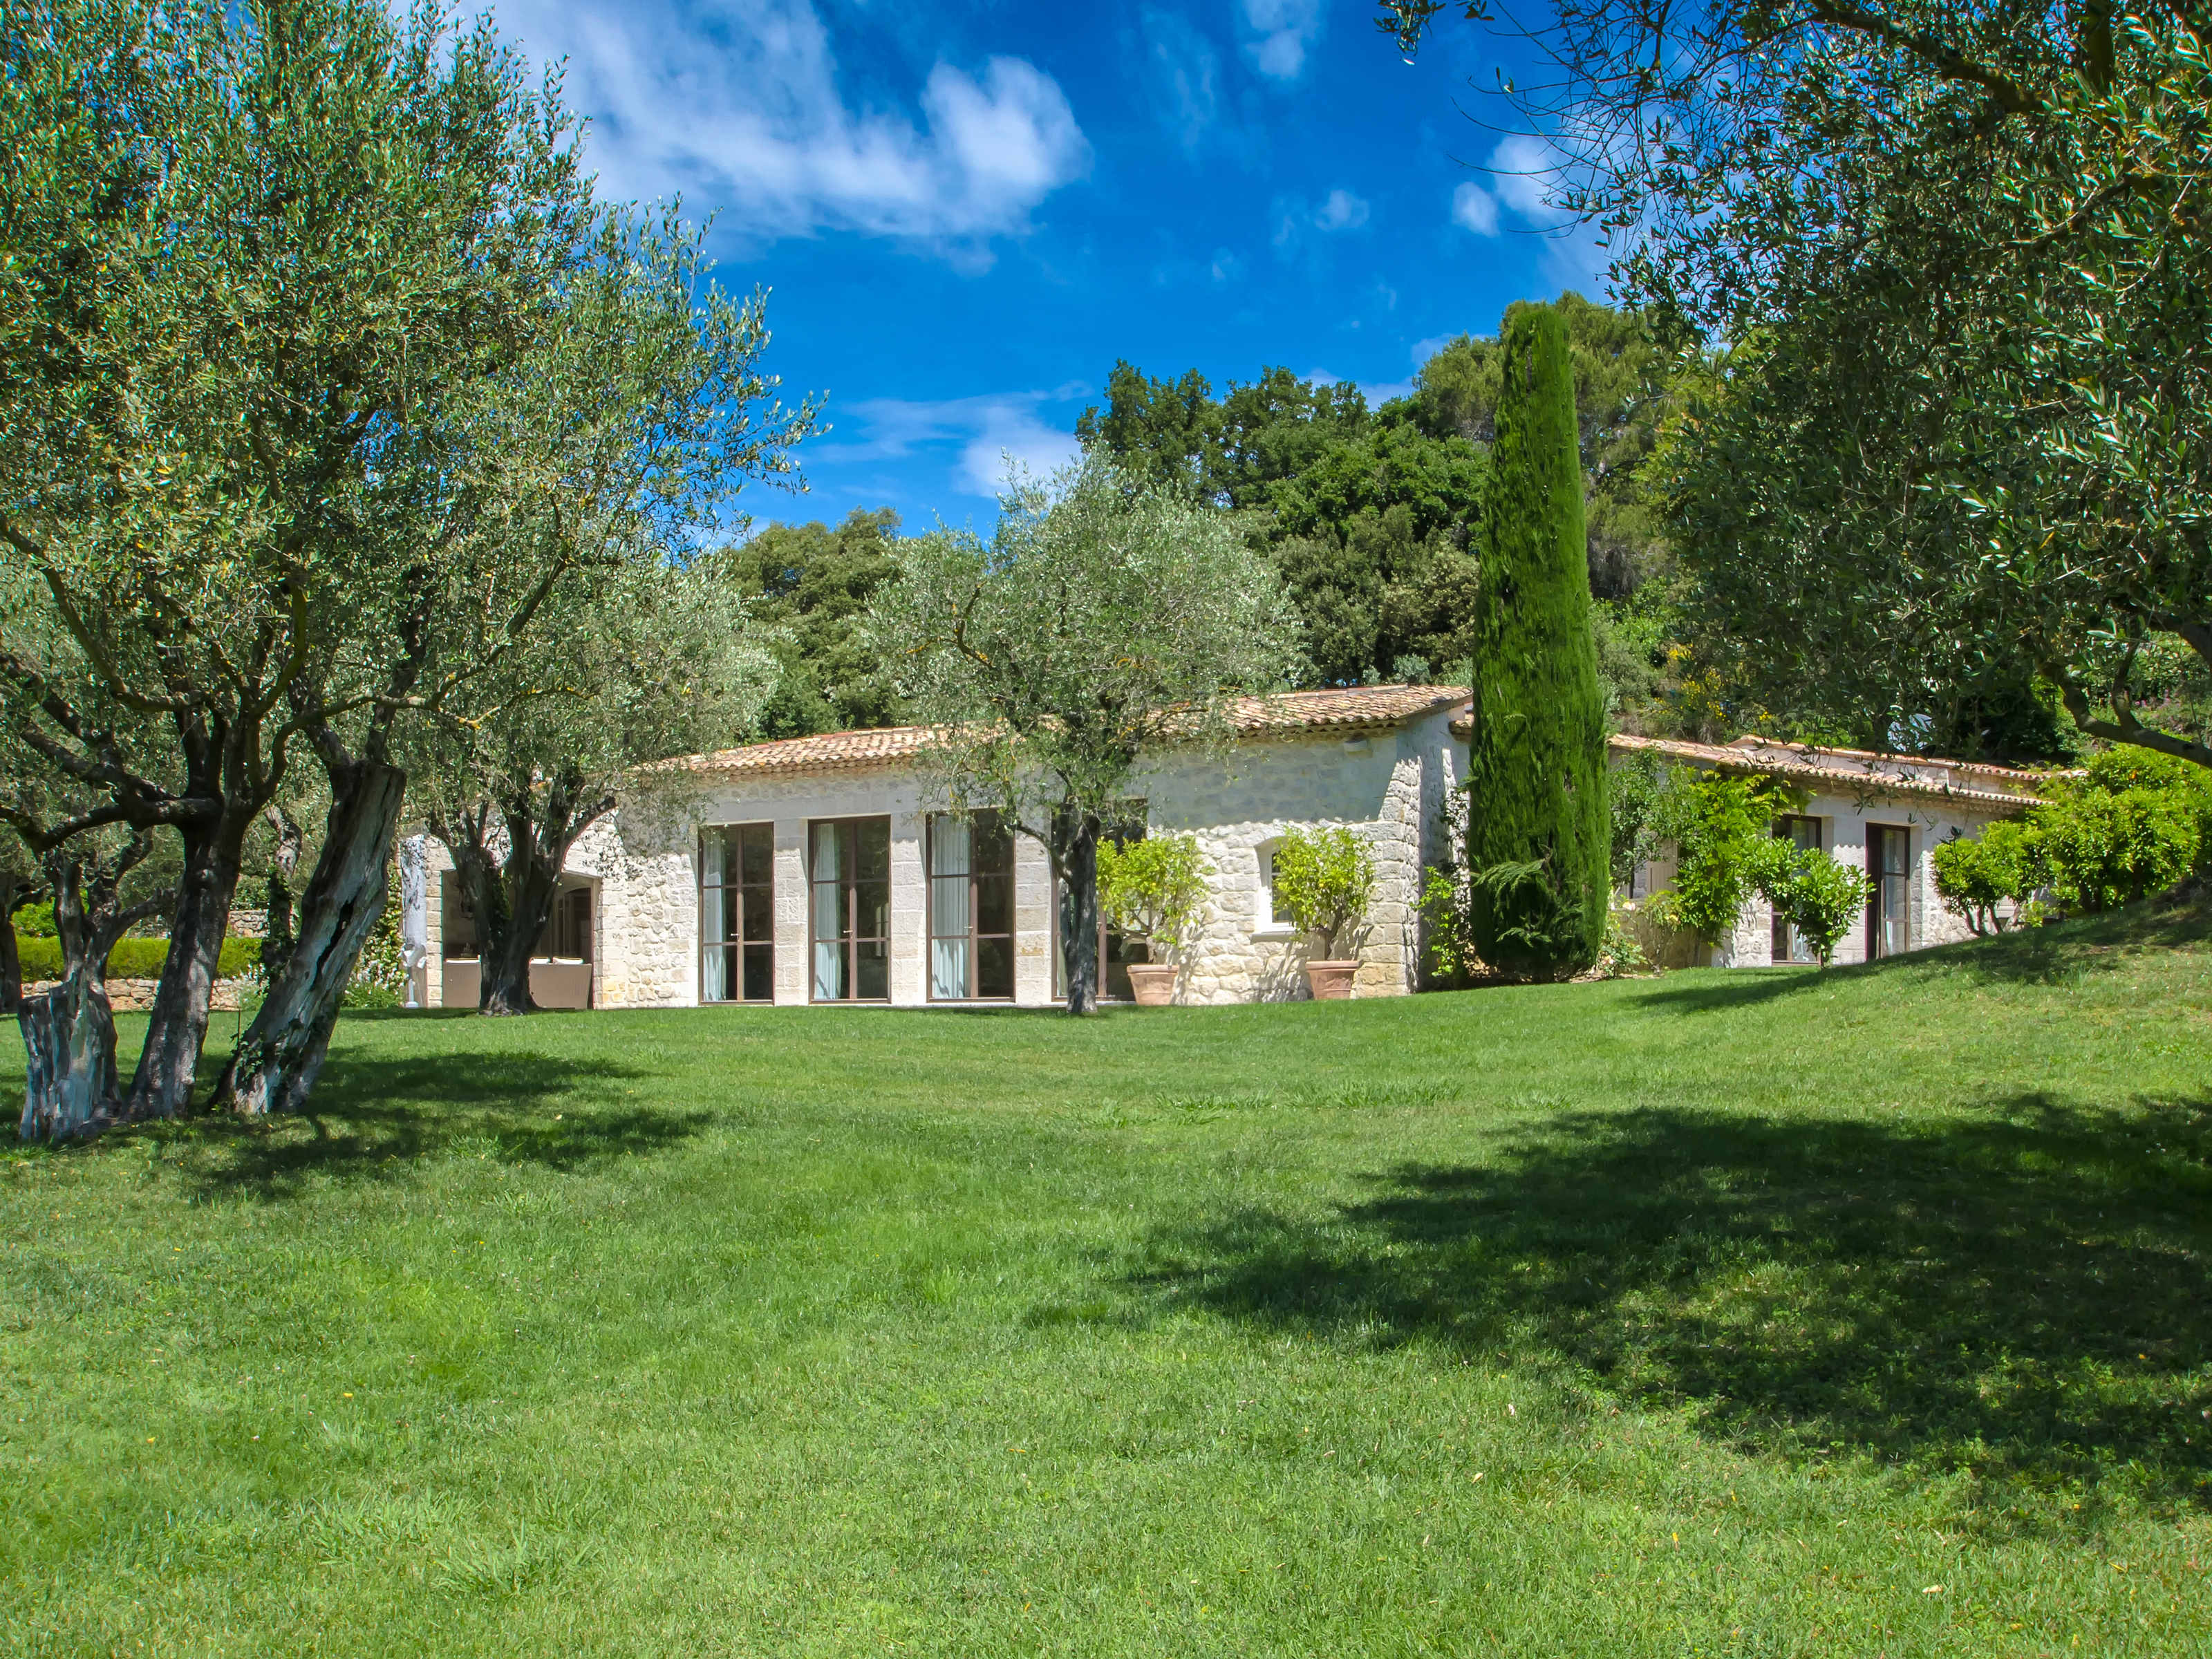 Single Family Home for Sale at Mougins-Gated Domain- superb property of 1 Ha of Land Mougins, Provence-Alpes-Cote D'Azur 06250 France